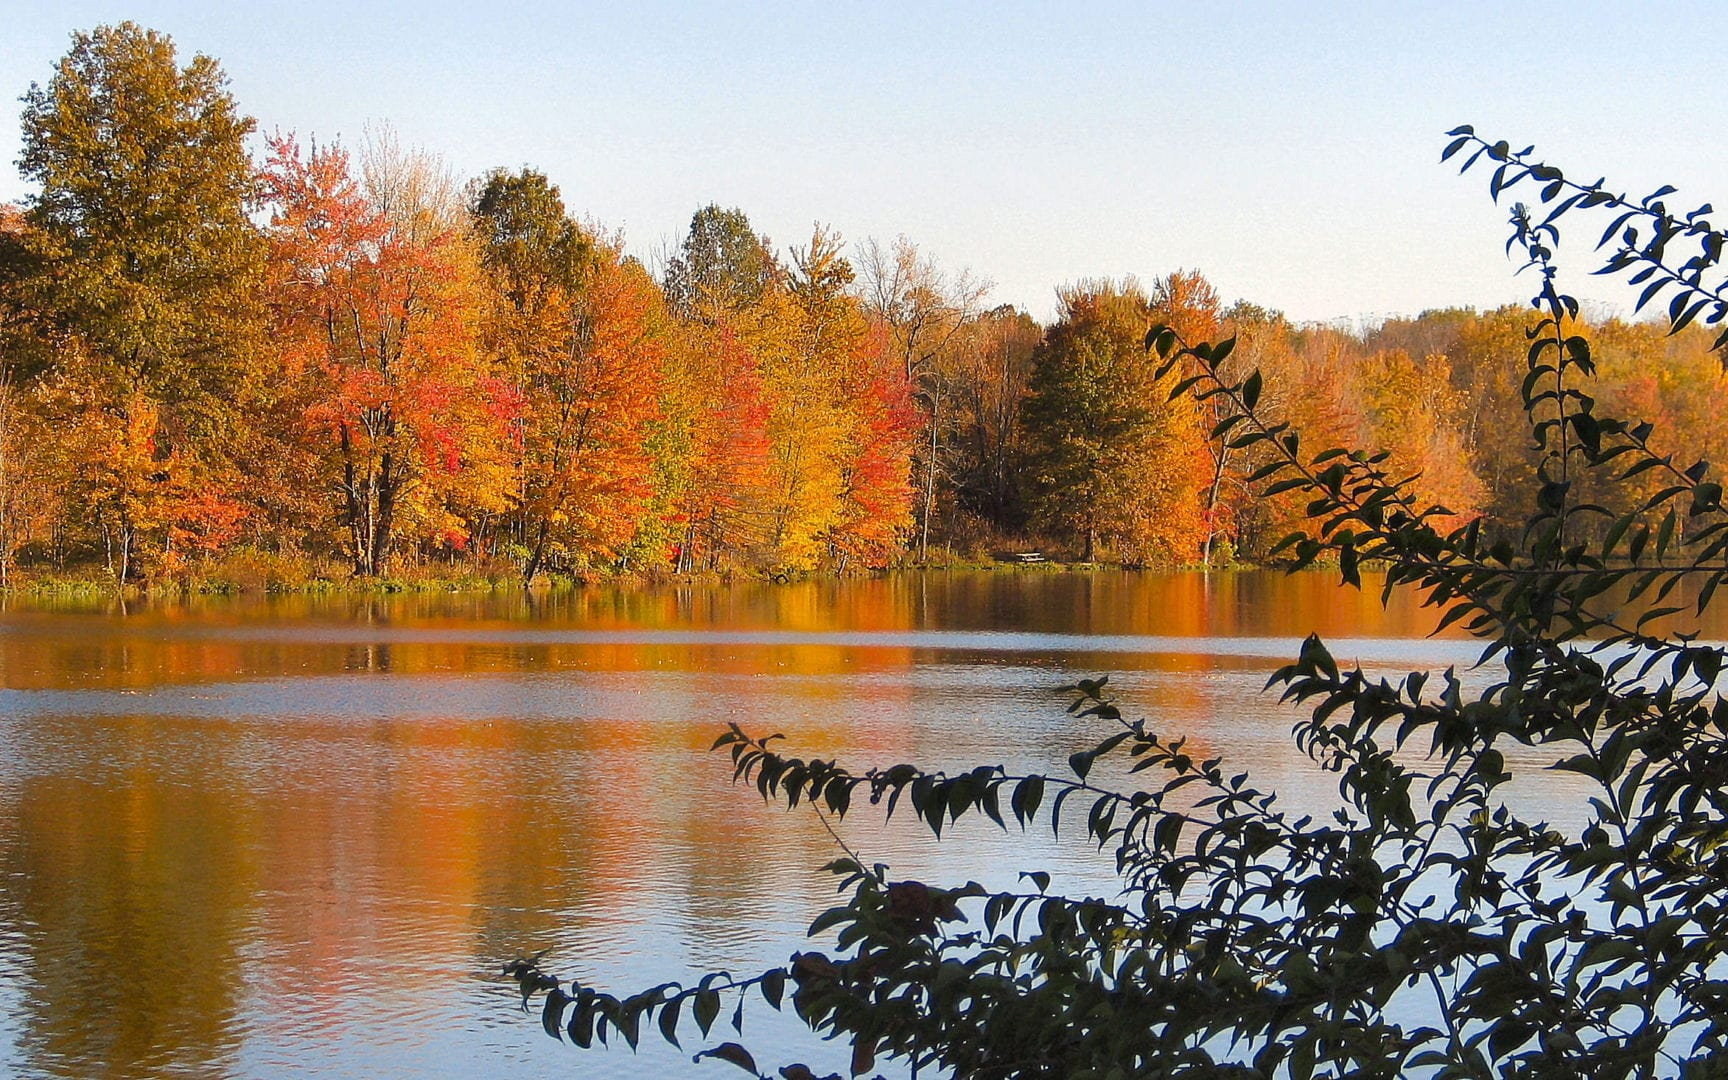 Trees with autumn leaves by the lake